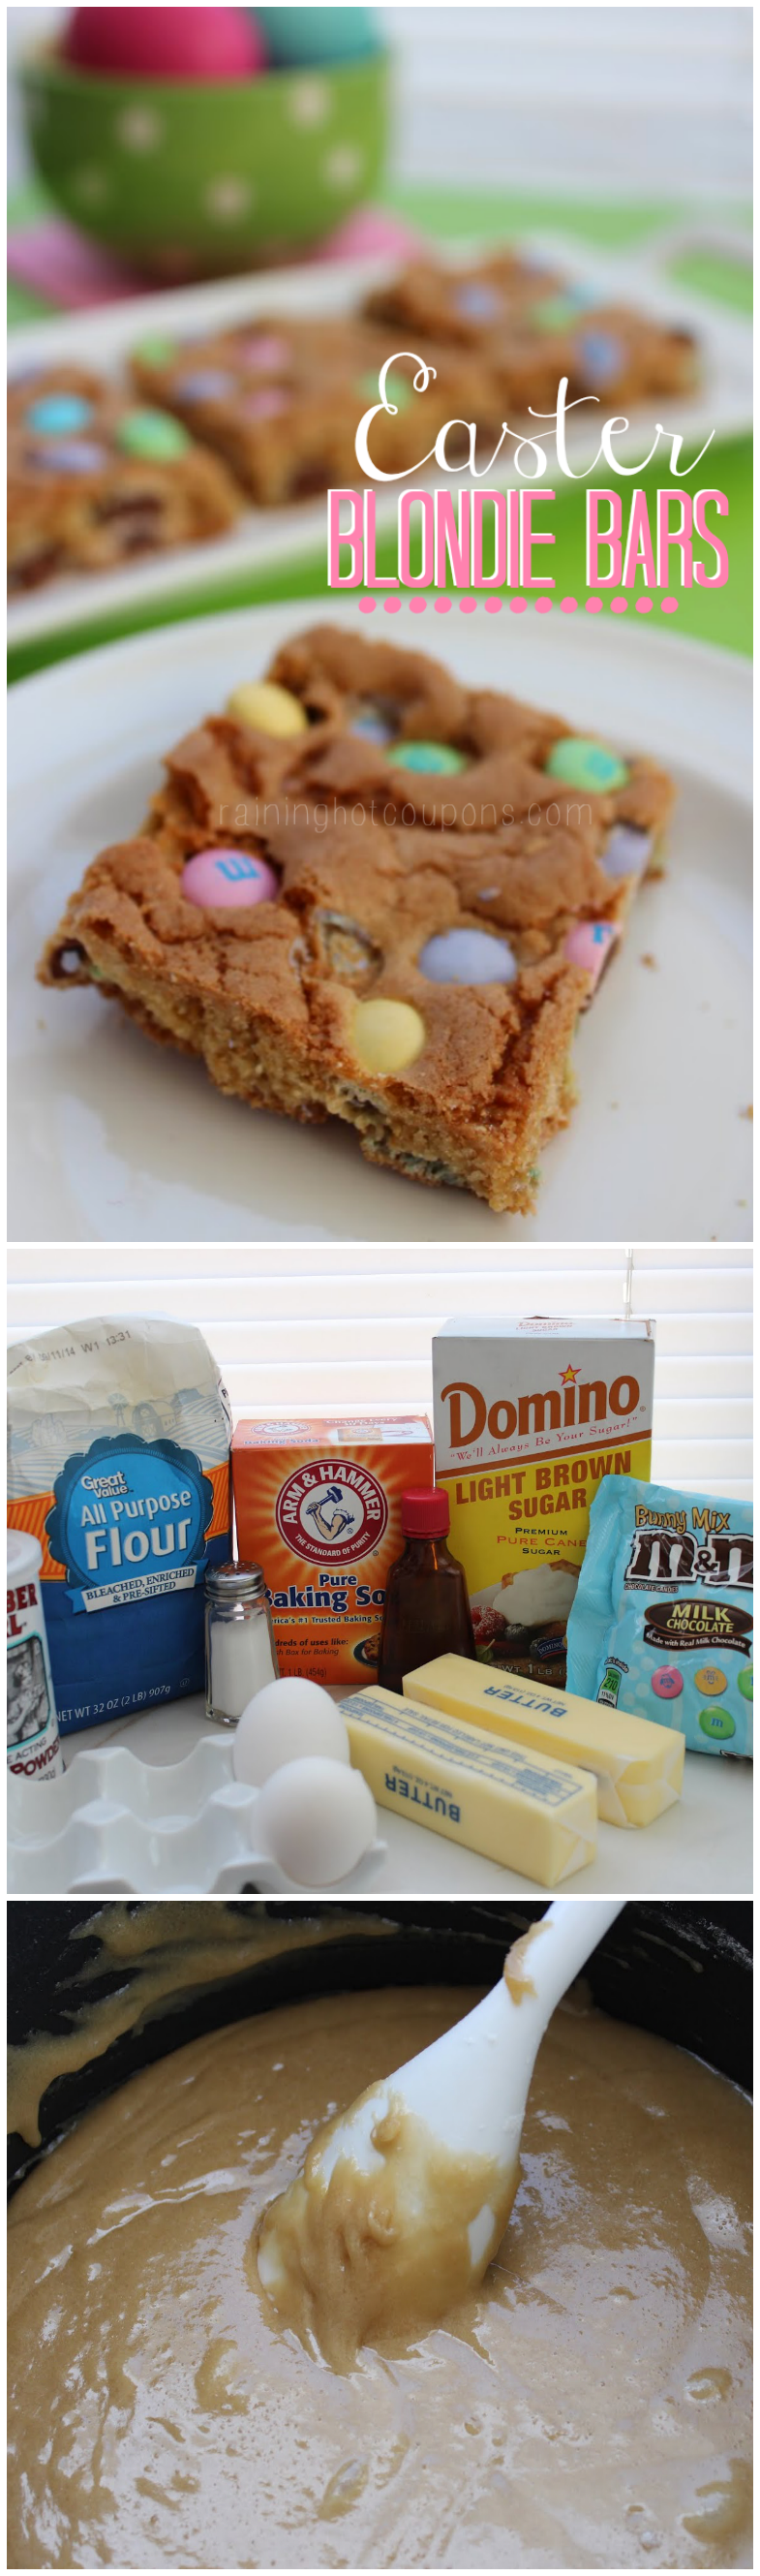 easter blondie bars collage.png